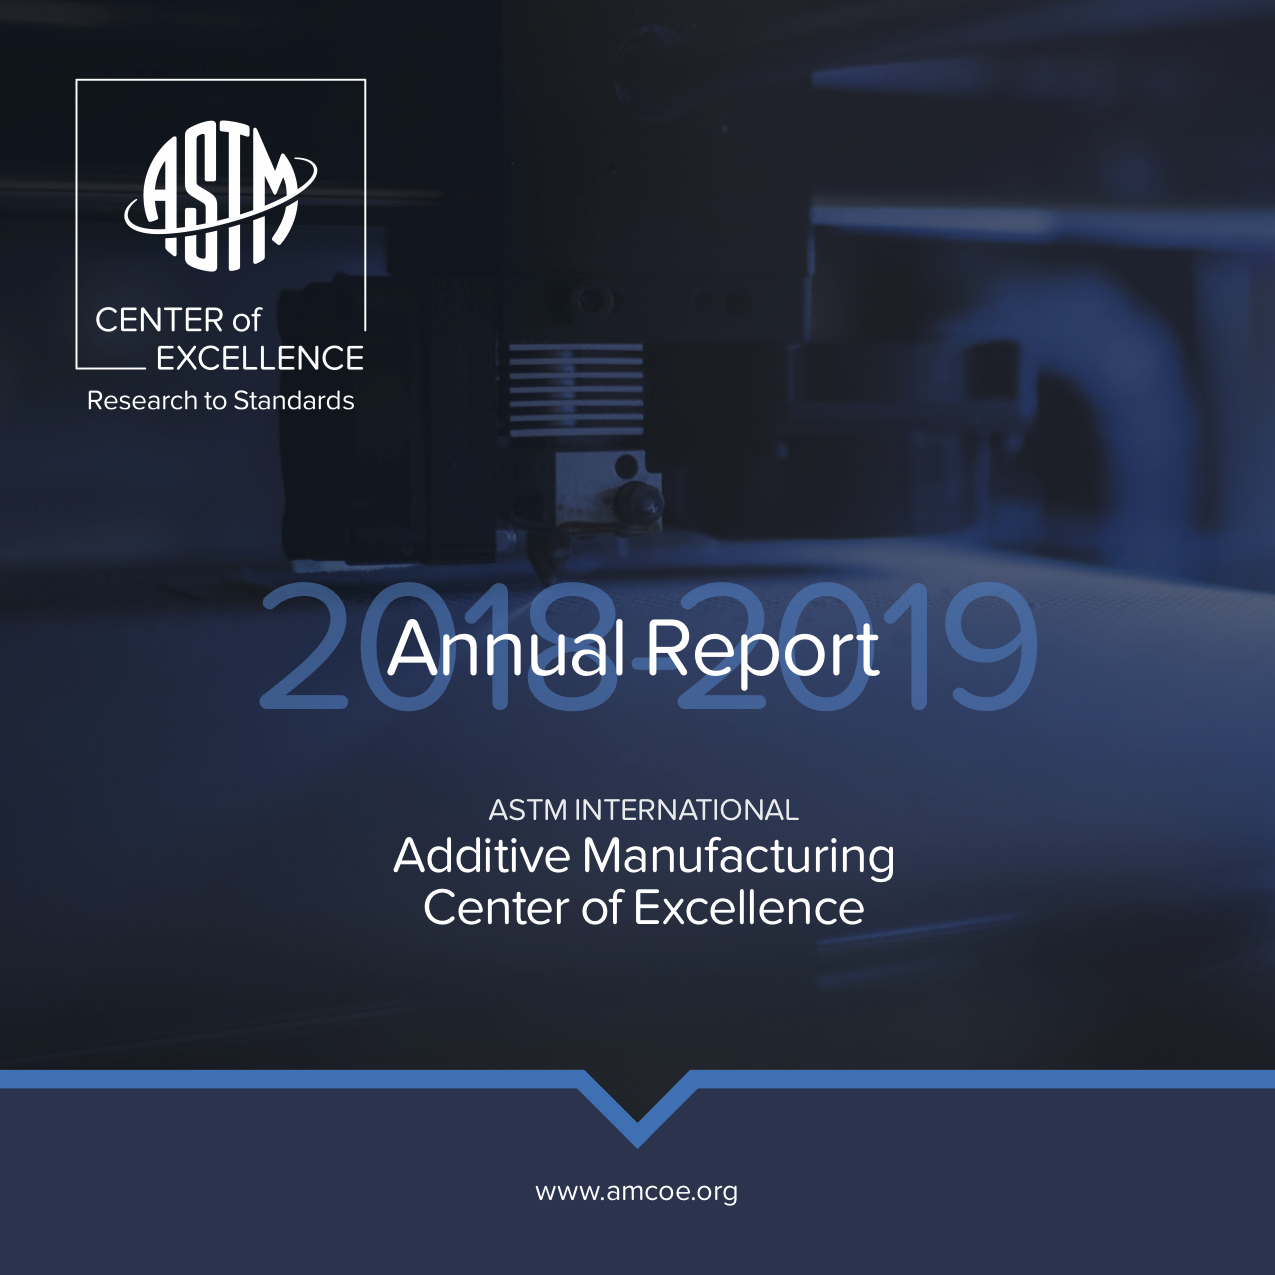 1st Annual Report - The Additive Manufacturing Center of Excellence has made significant strides since it launched in July 2018. Read more about the accomplishments we have achieved – and glimpse our plans for the future – in this first ever annual report.